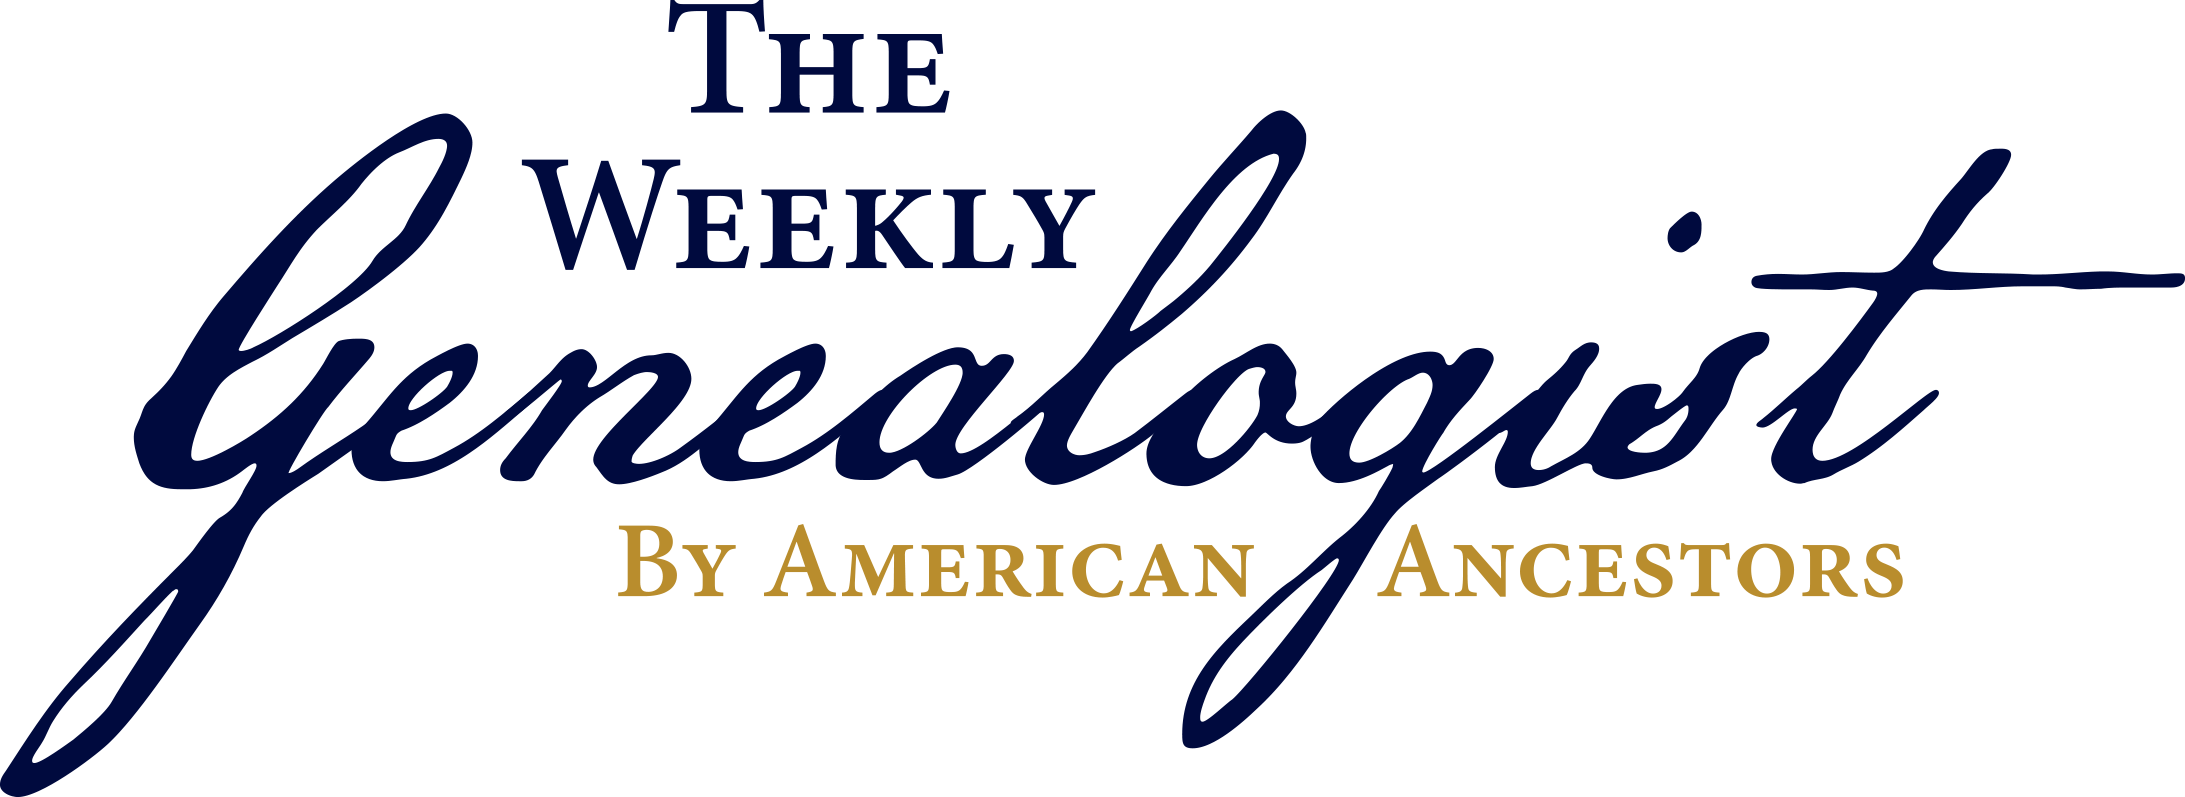 The Weekly Genealogist by American Ancestors